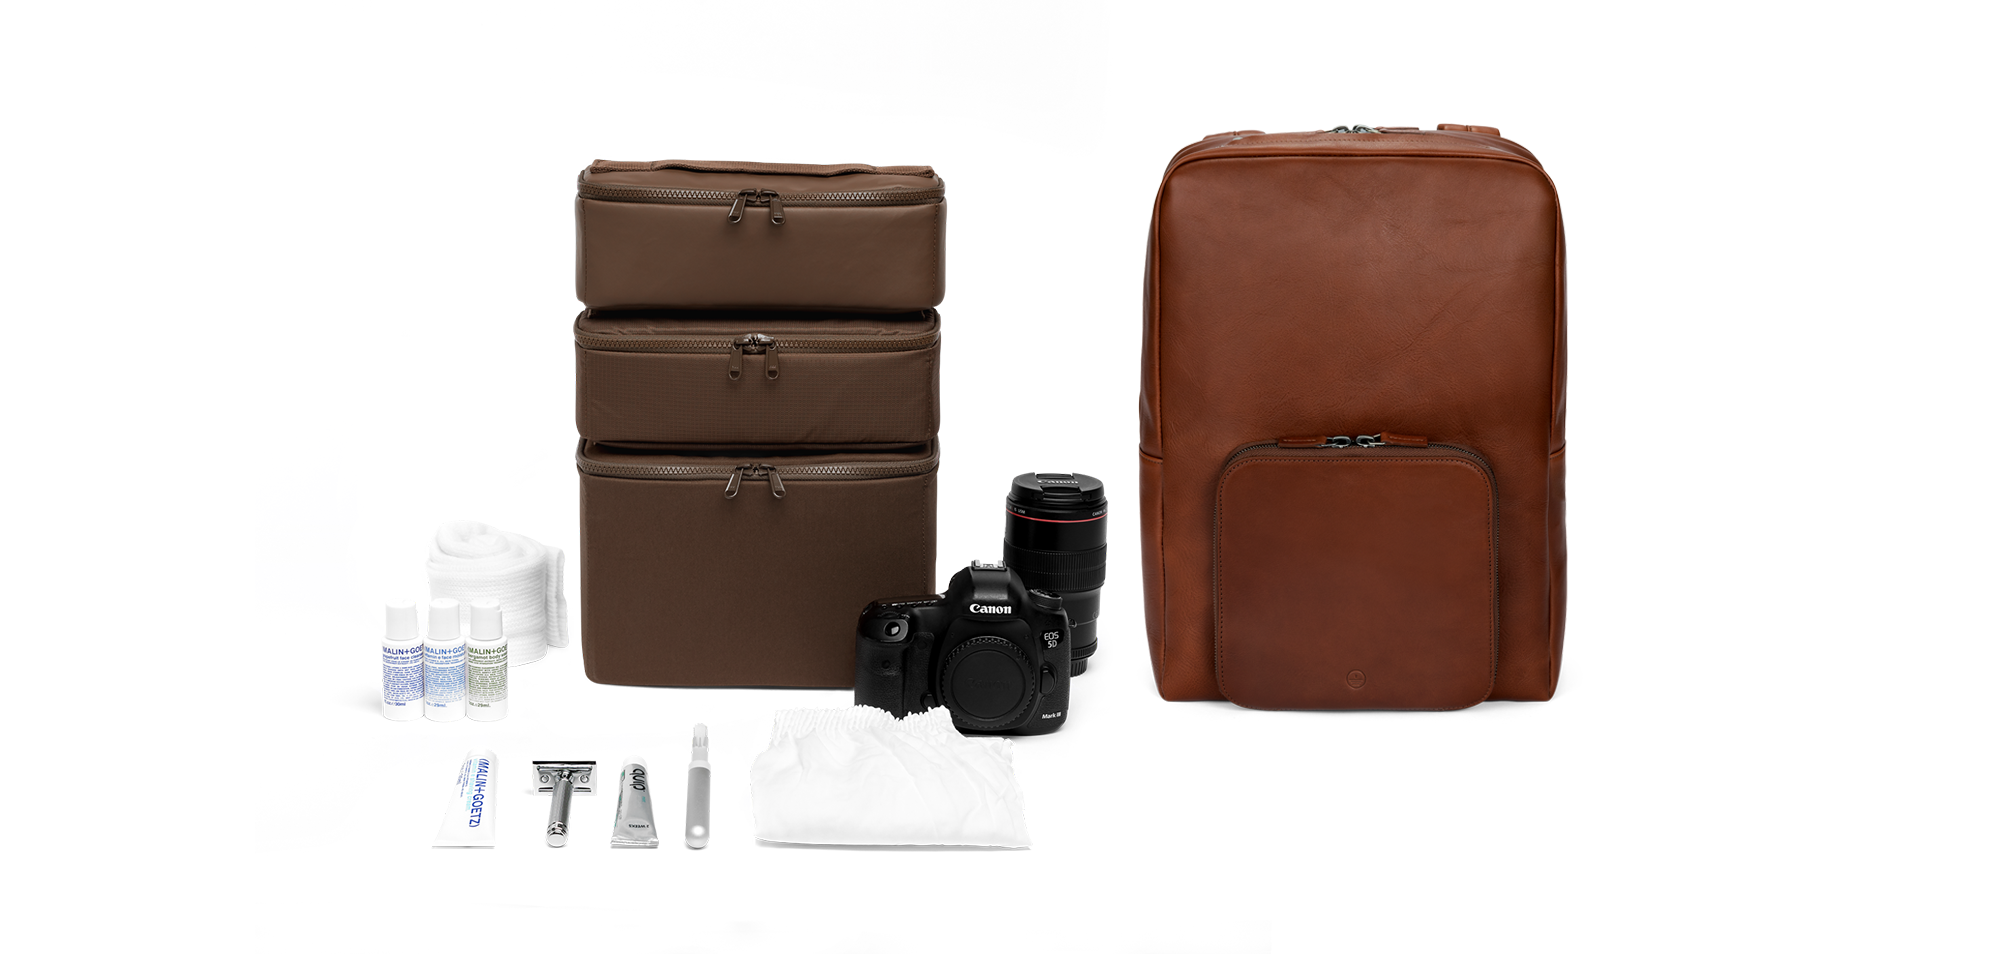 This Is Ground | Leather Goods for Travel & Tech – thisisground .